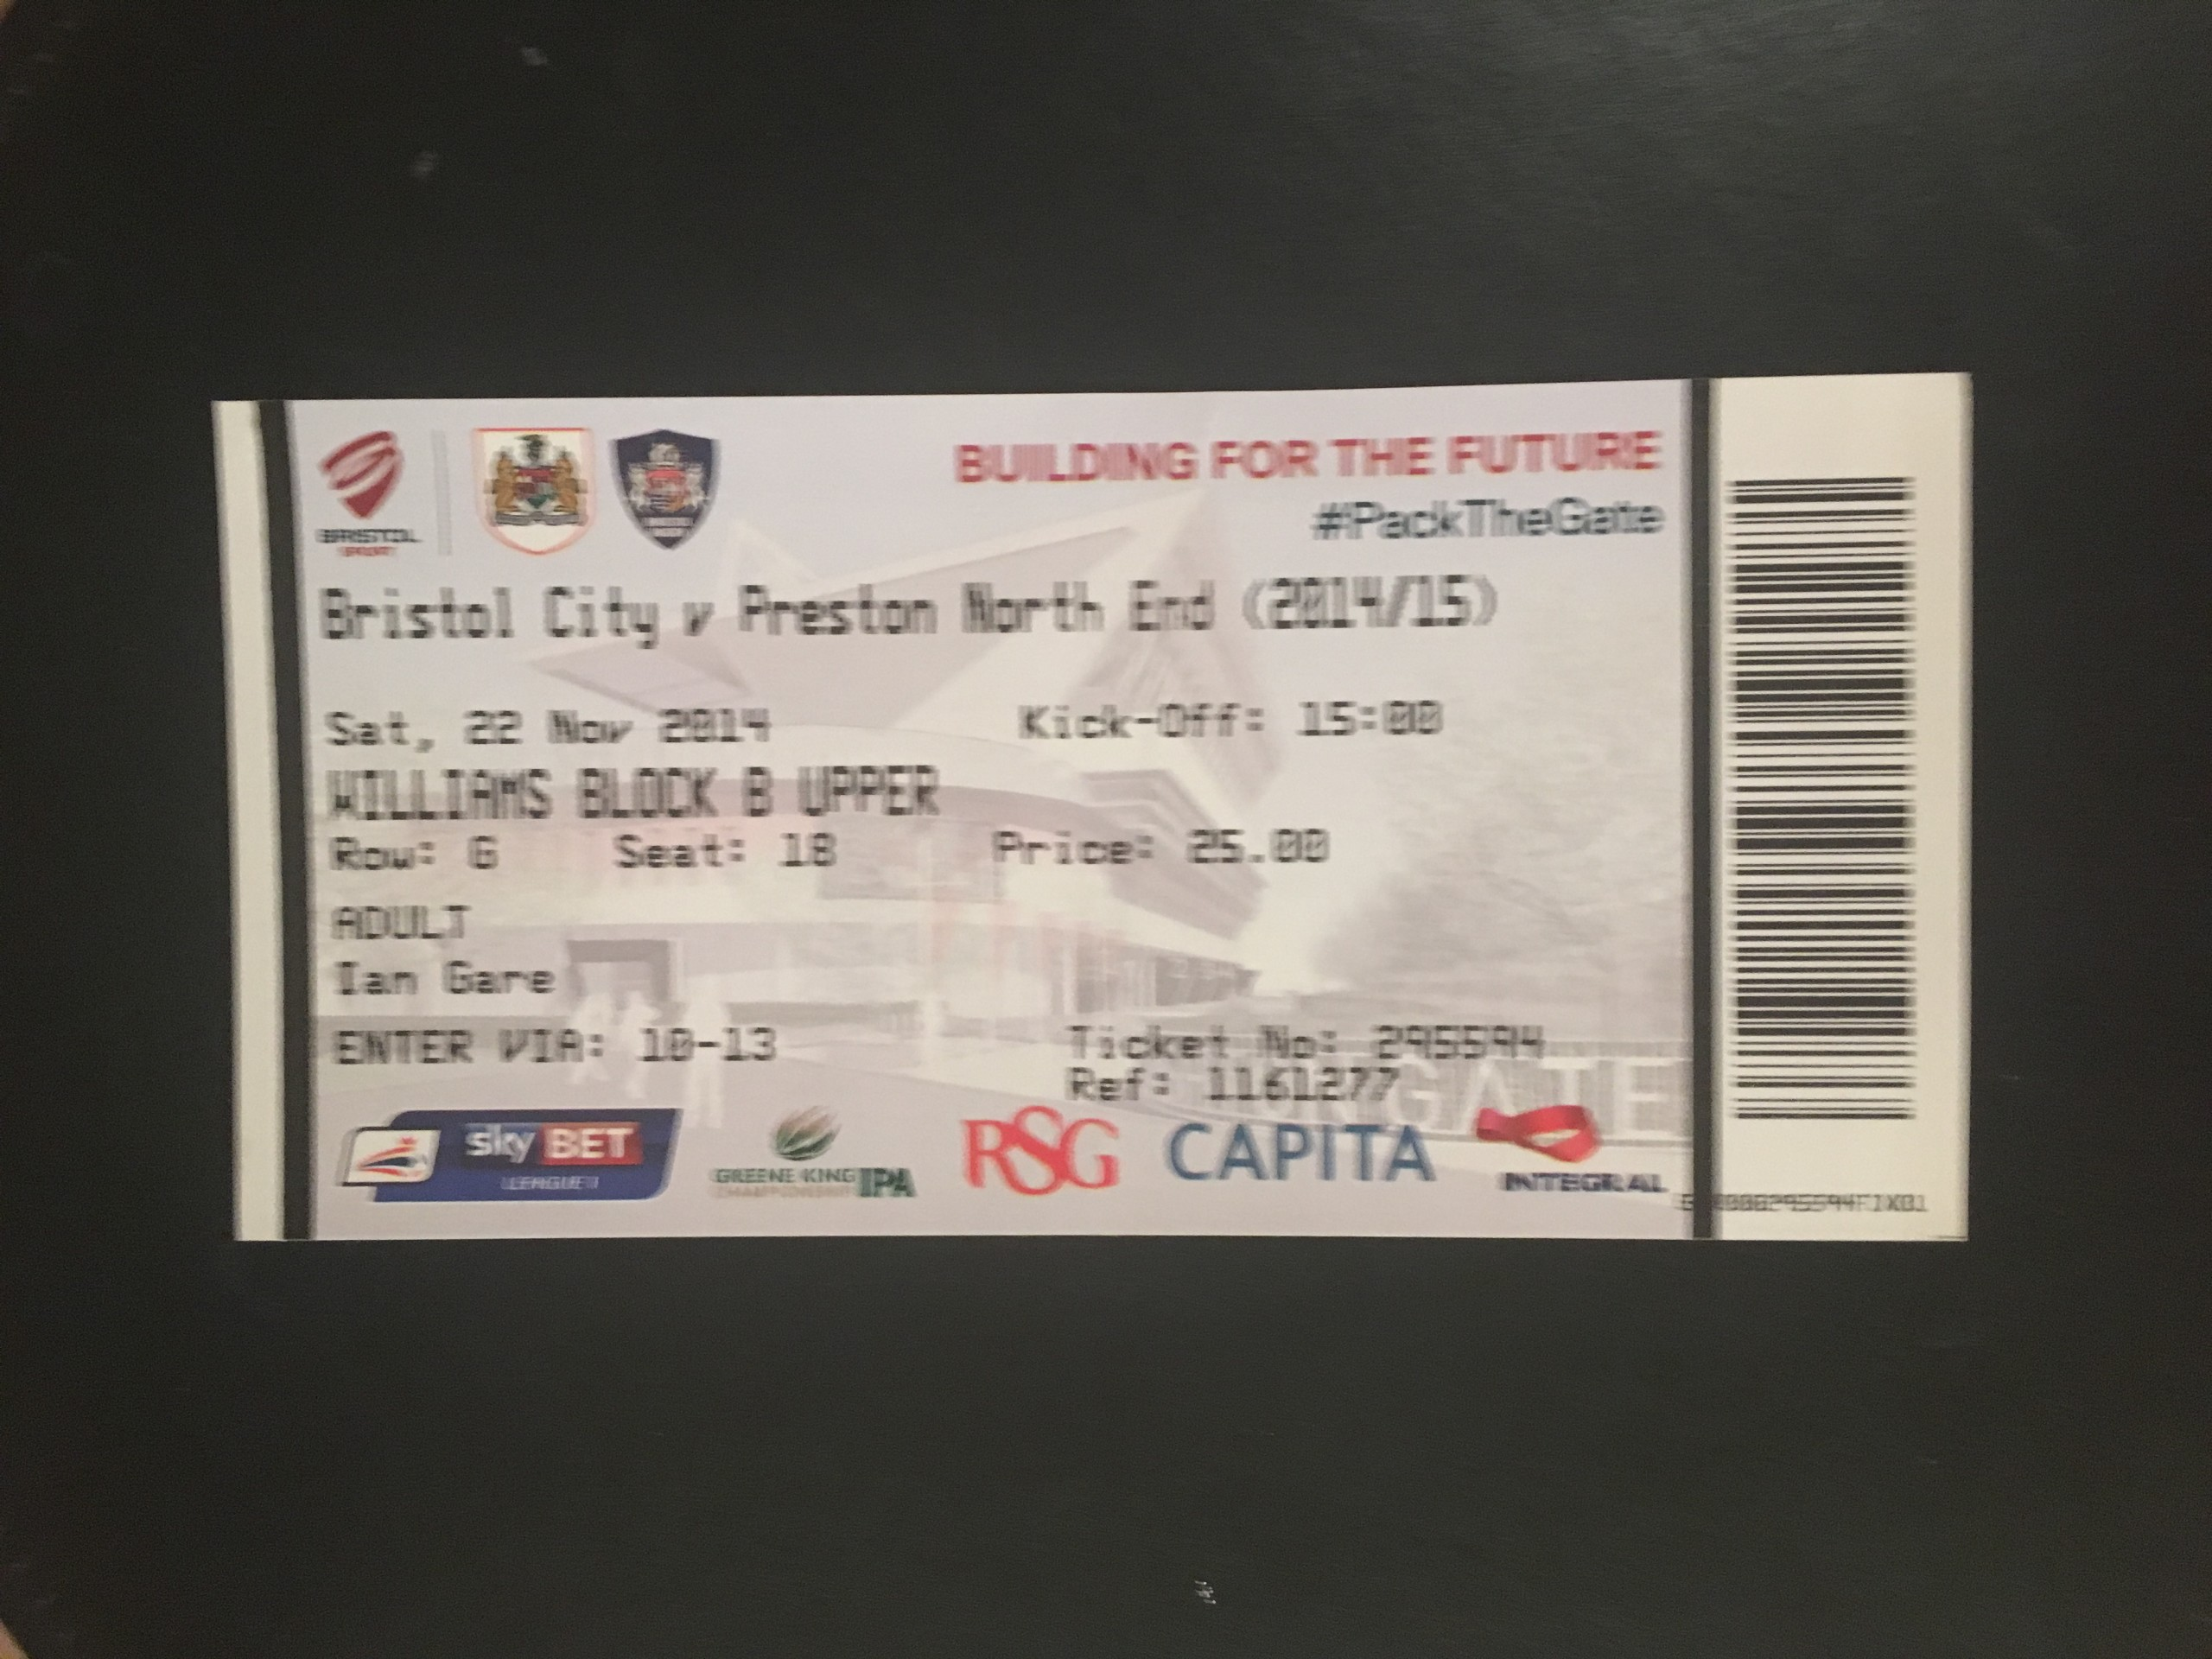 Bristol City v Preston North End 22-11-2014 Ticket